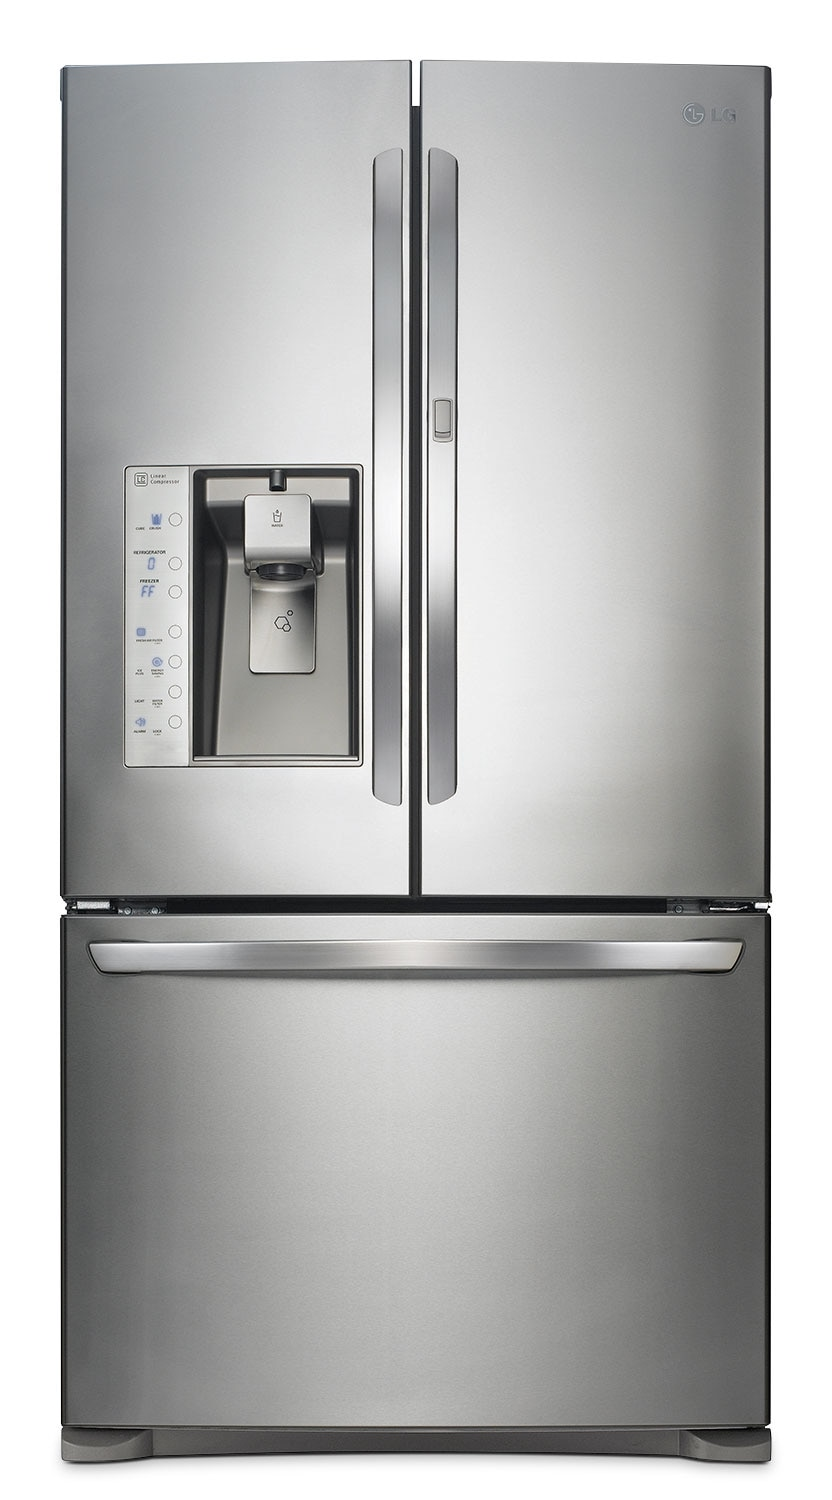 LG Appliances Stainless Steel French Door Refrigerator (29.6 Cu. Ft.) - LFXS30766S